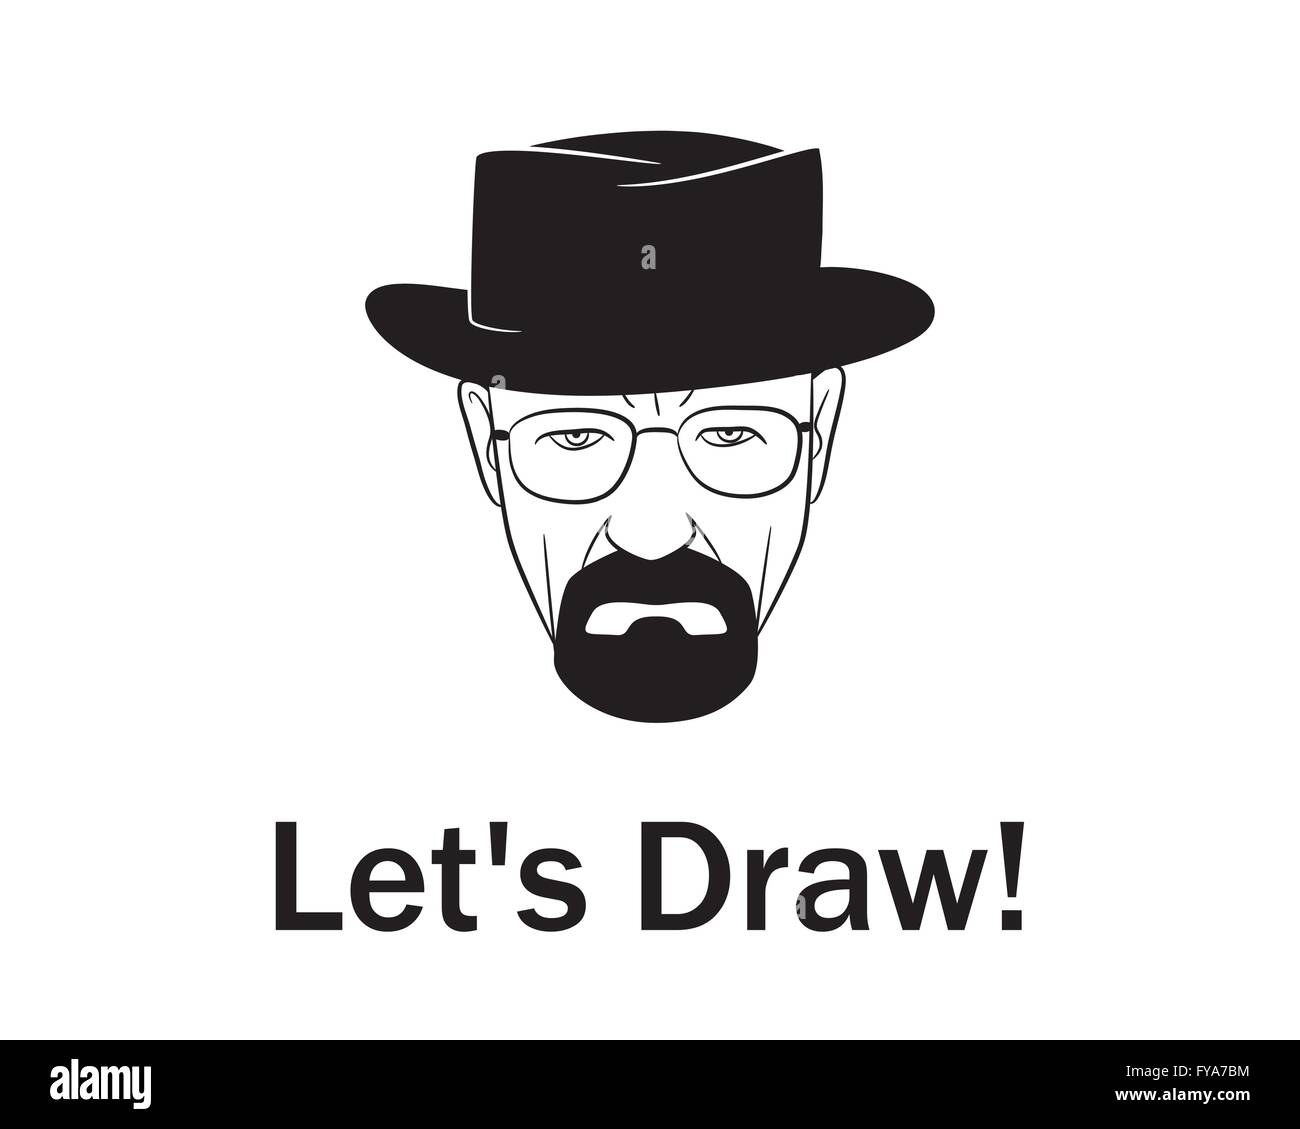 Let's draw man in a hat with beard.Vector illustration. EPS 10. No transparency. No gradients. - Stock Image